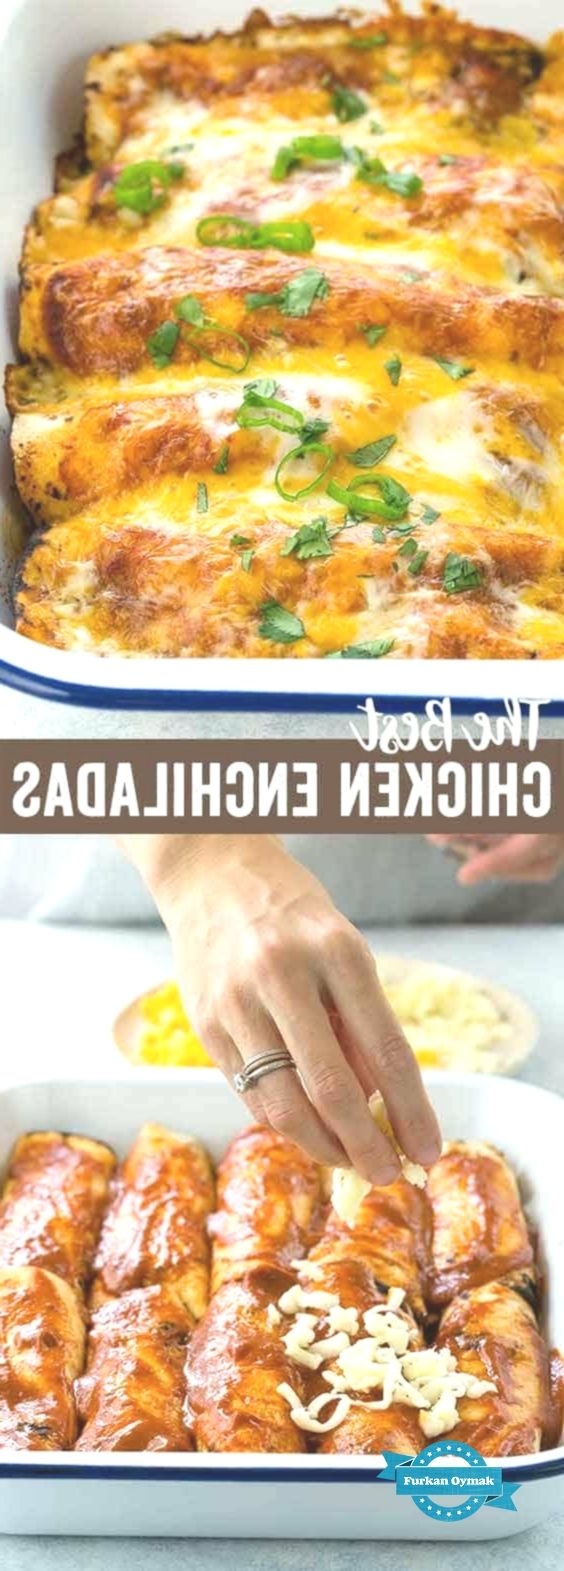 This easy chicken enchiladas recipe is an authentic Mexican food staple. Tender... -